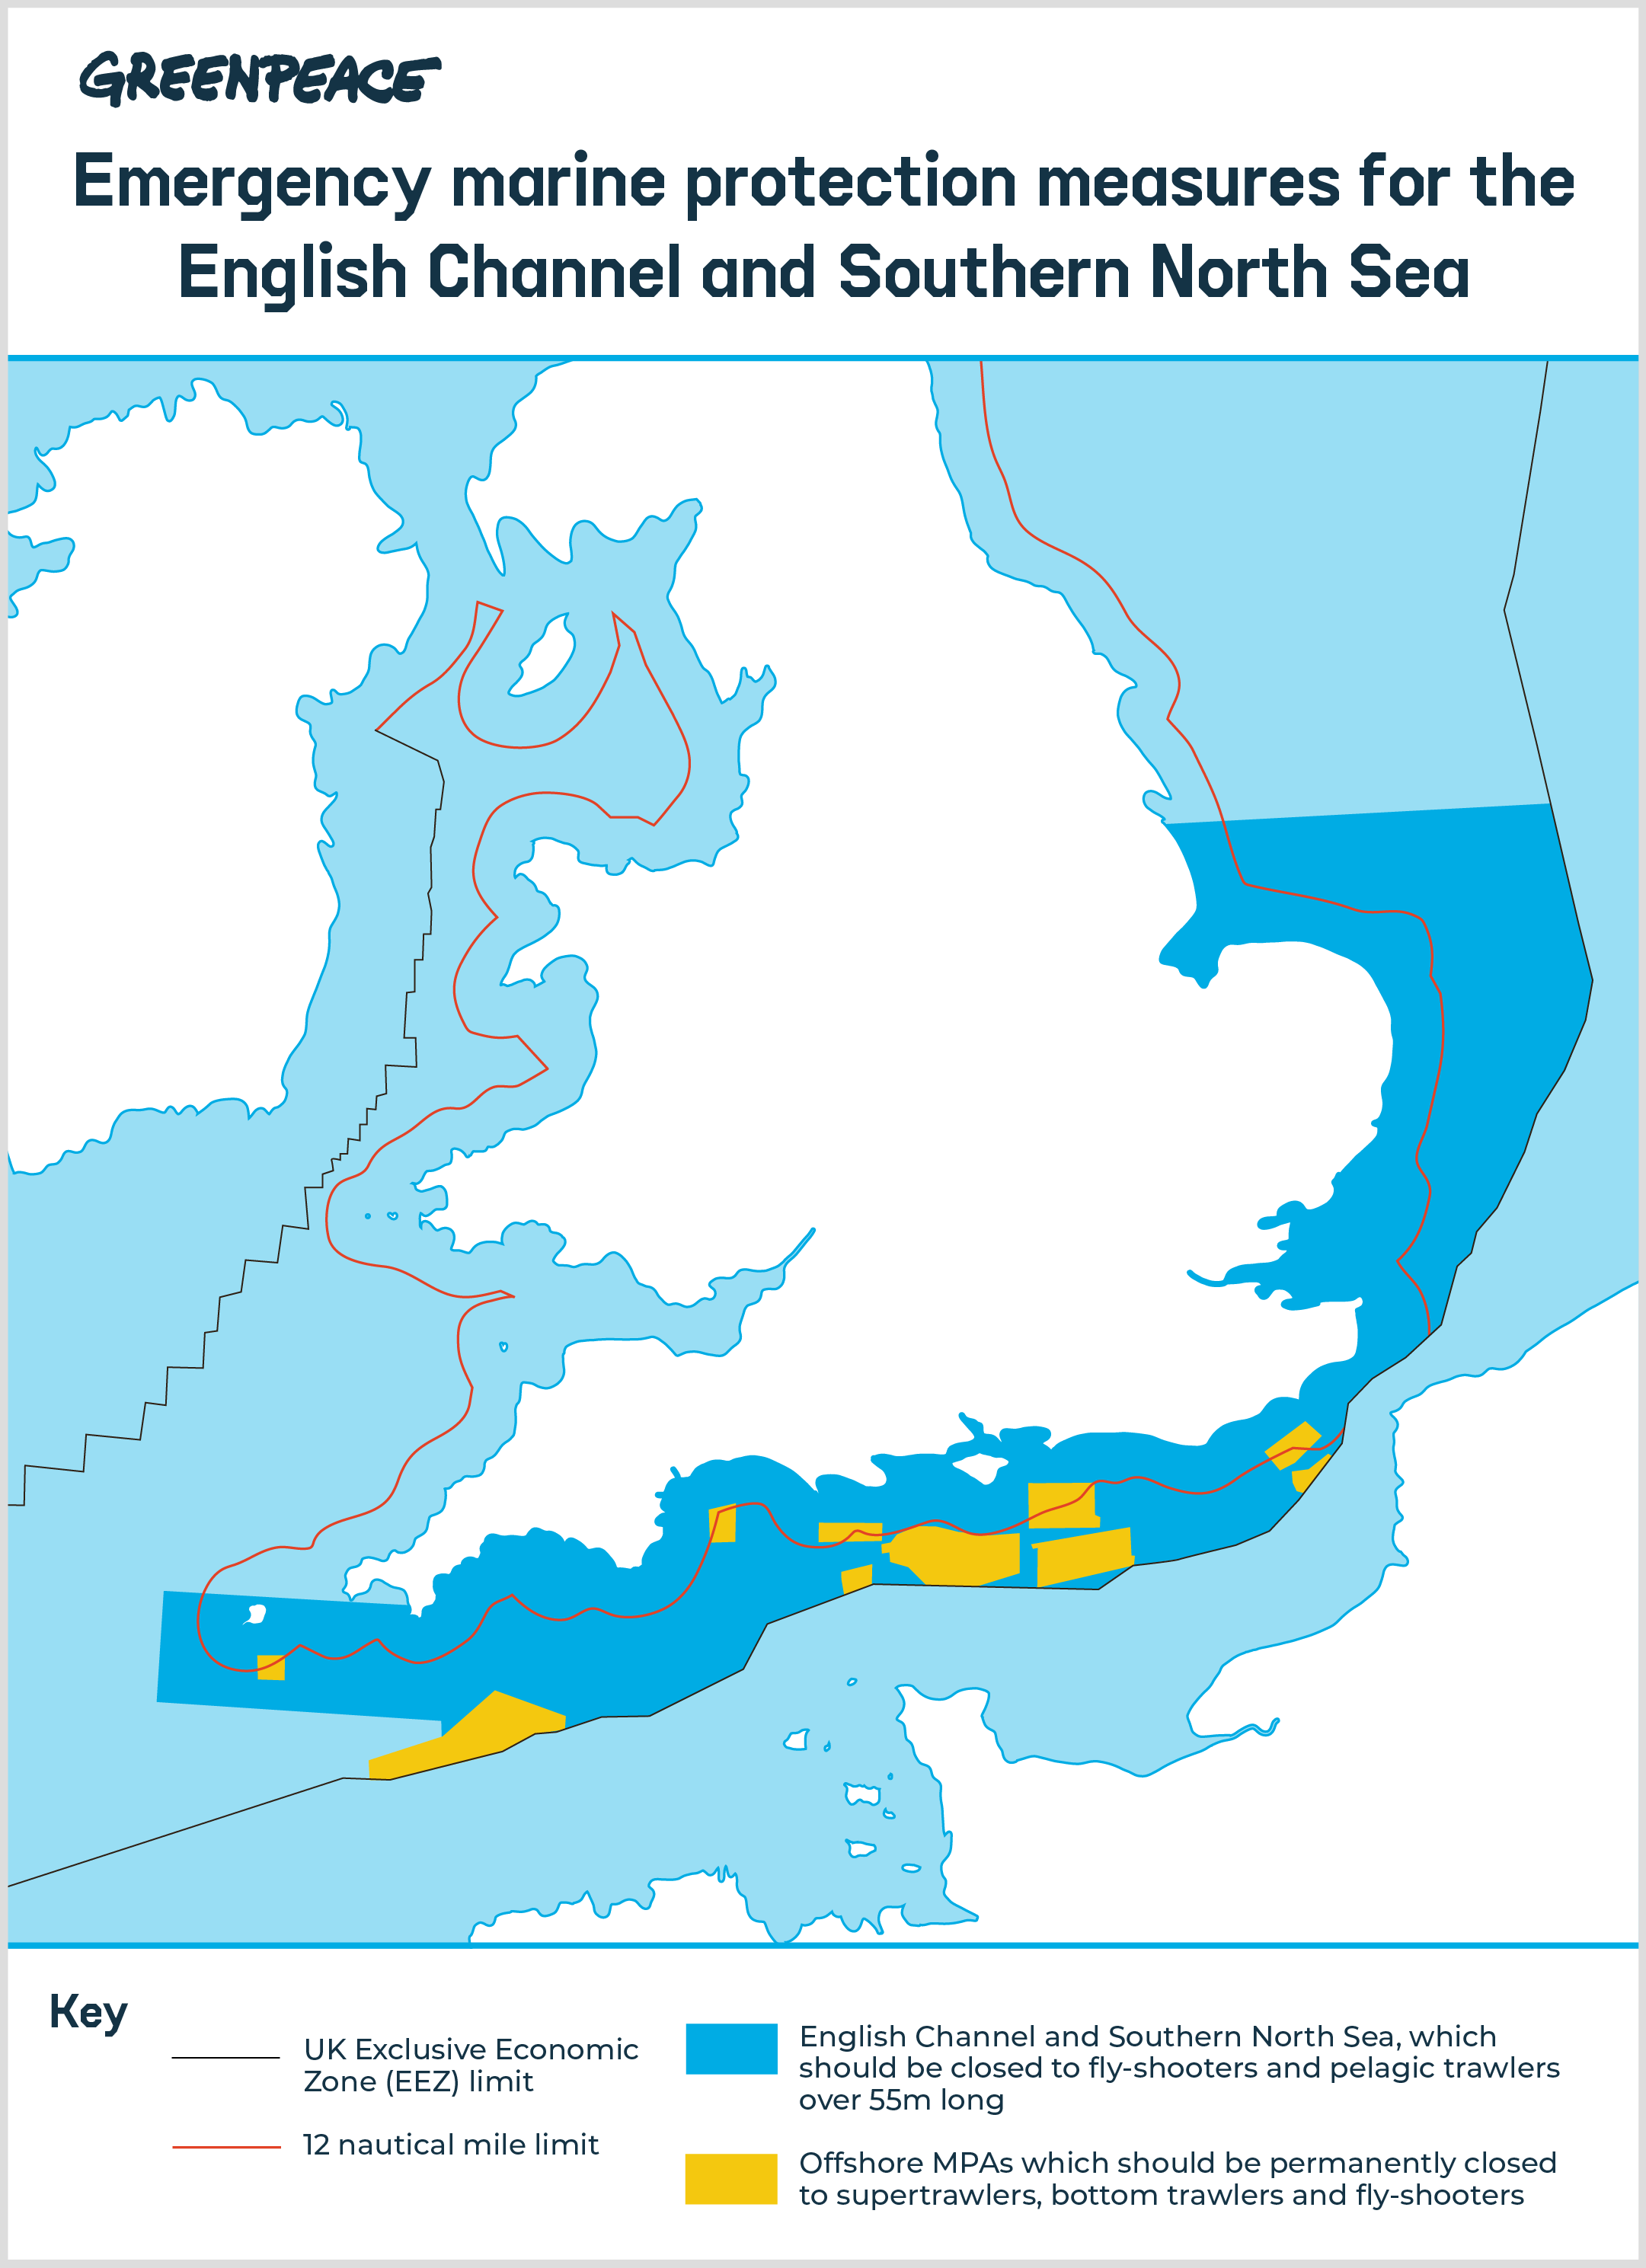 A map of proposed protection measures around the UK's south coast. A solid shaded area running from the tip of Cornwall to just below the Humber Estuary shows the area where fly-shooters and pelagic trawlers over 55m long should be excluded. 10 irregularly-shaped yellow blocks show offshore MPAs, with a notable cluster around the Isle of Wight. These should be permanently closed to supertrawlers, bottom trawlers and fly-shooters.